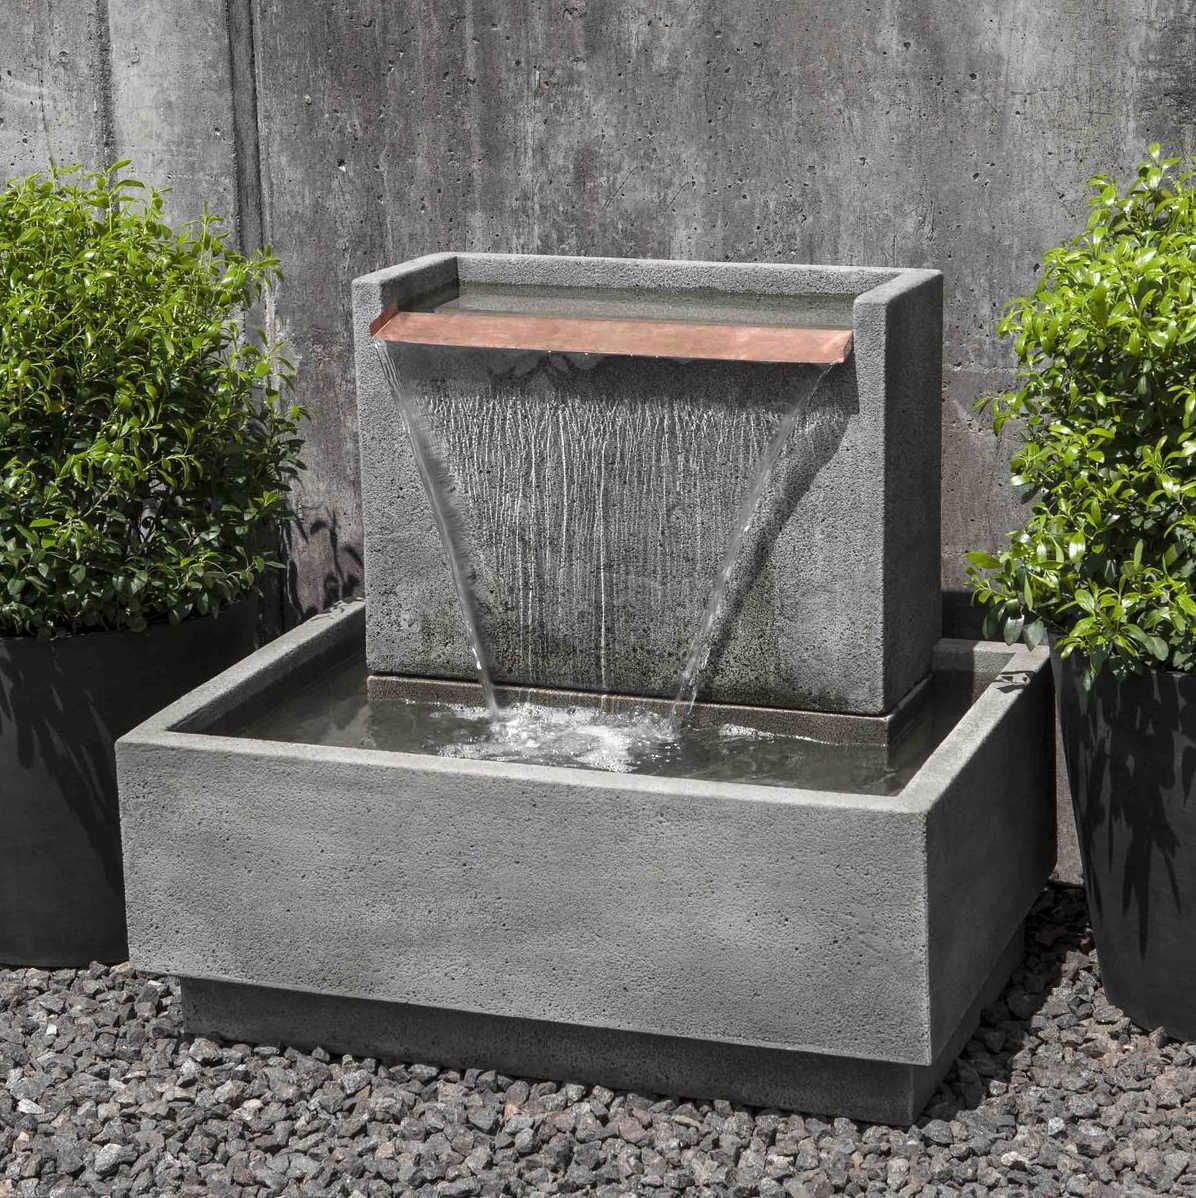 Falling Water Fountains Water Features In The Garden Diy Water